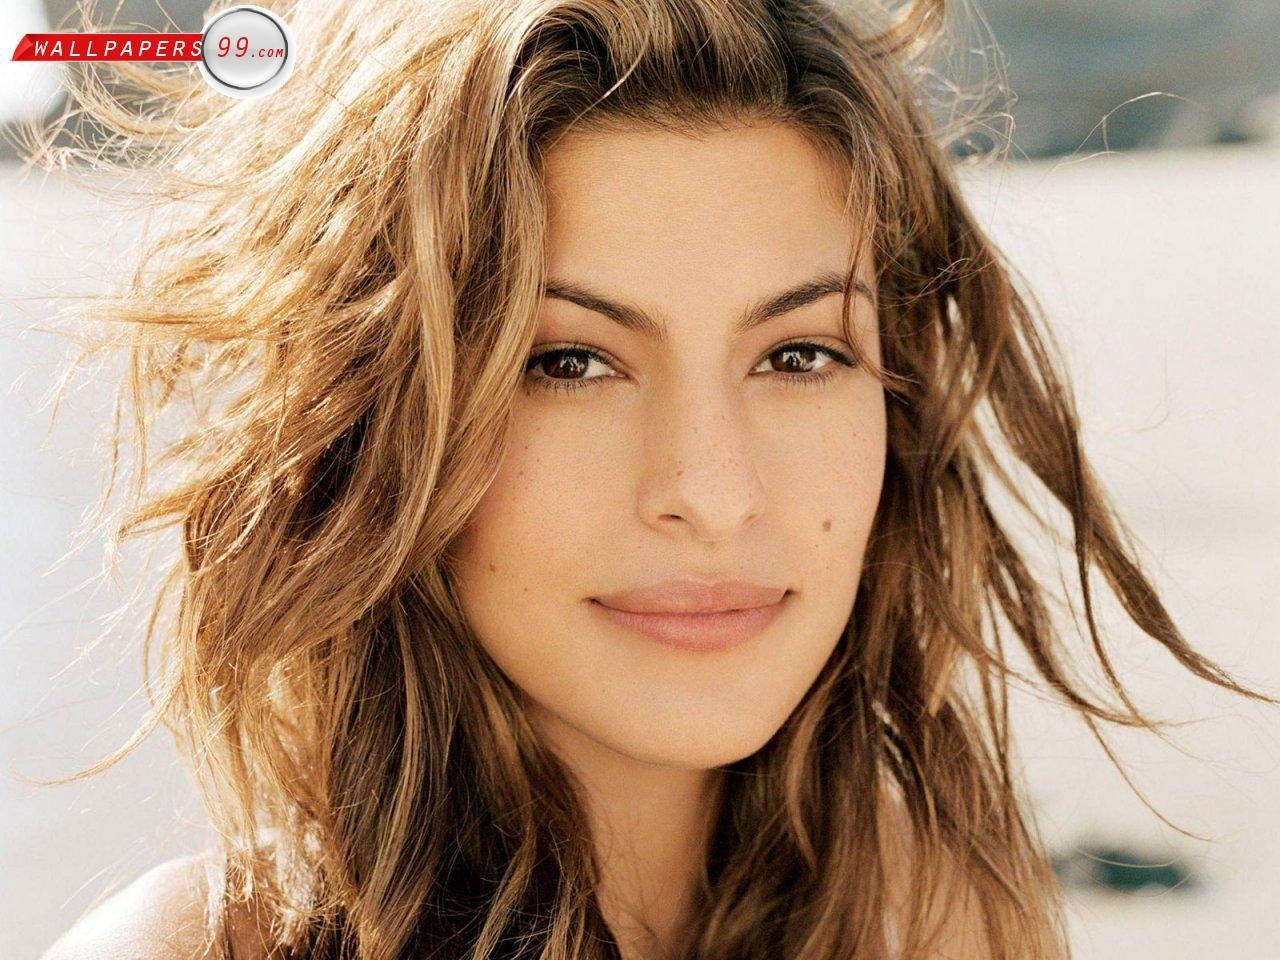 http://2.bp.blogspot.com/-zNyyW35DvS8/TwyoFSQ5siI/AAAAAAAAc1w/mBxfmPa2y3s/s1600/Beautiful-Eva-Mendes-Wallpapers-5.jpg